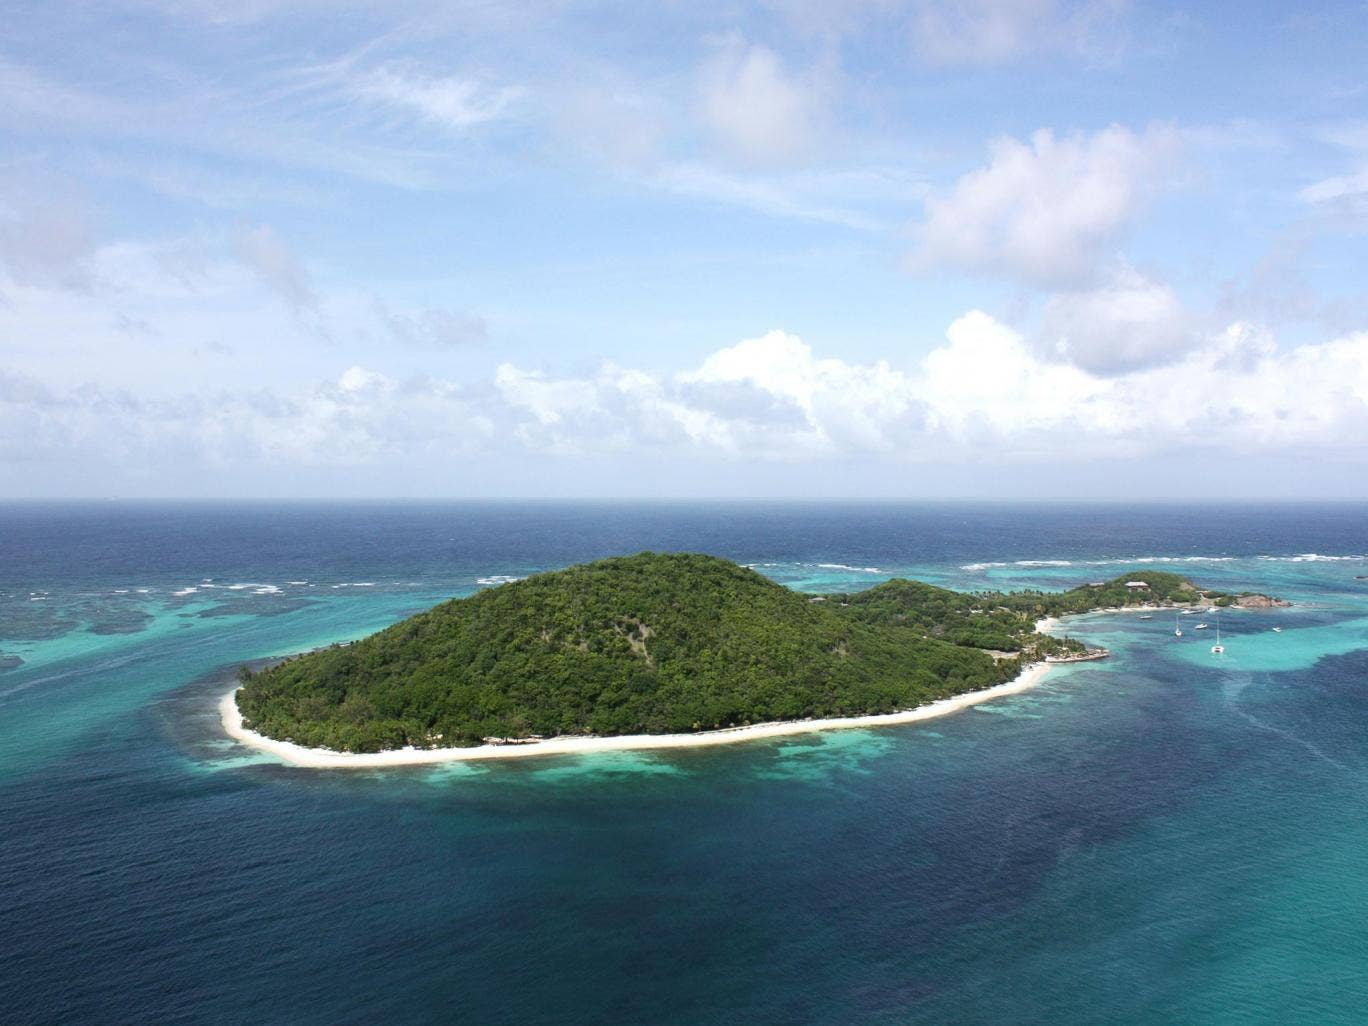 Police on the island of St Vincent said the sailing instructor was found by the Coastguard